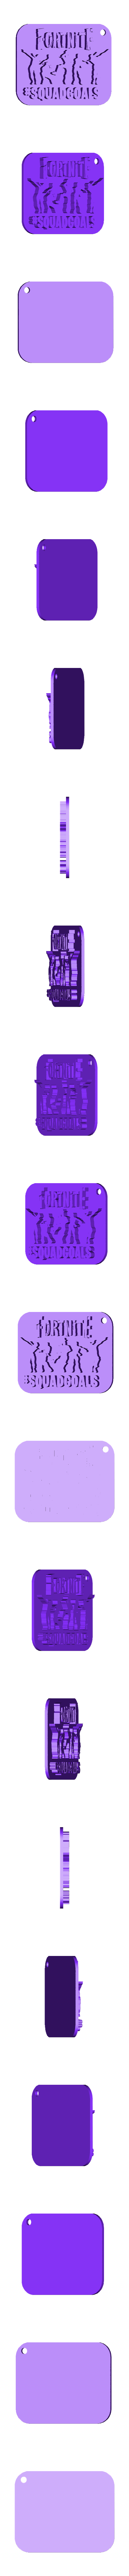 Squad.stl Download STL file Fortnite keyhangers  • 3D print model, miranda77mr